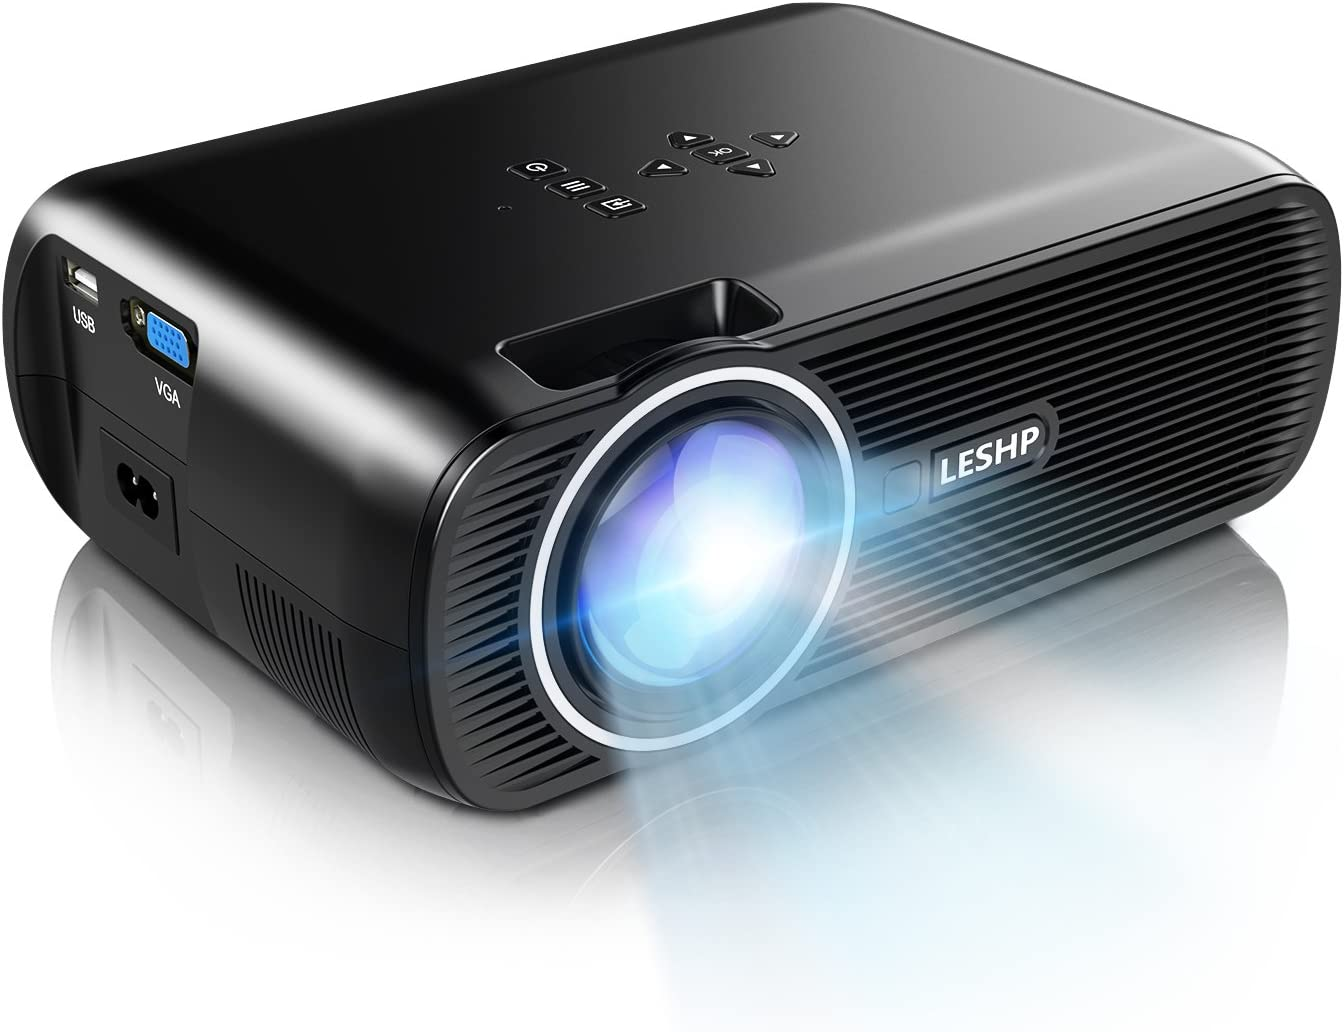 B01LW0BVTO 1500 Lumens LCD Mini Projector,LESHP LED Video Projector Home Projector with Free HDMI Support 1080P for Home Cinema Theater TV Laptop Game SD iPad iPhone Android Smartphone,Black 71rJ3mb2zqL.SL1500_